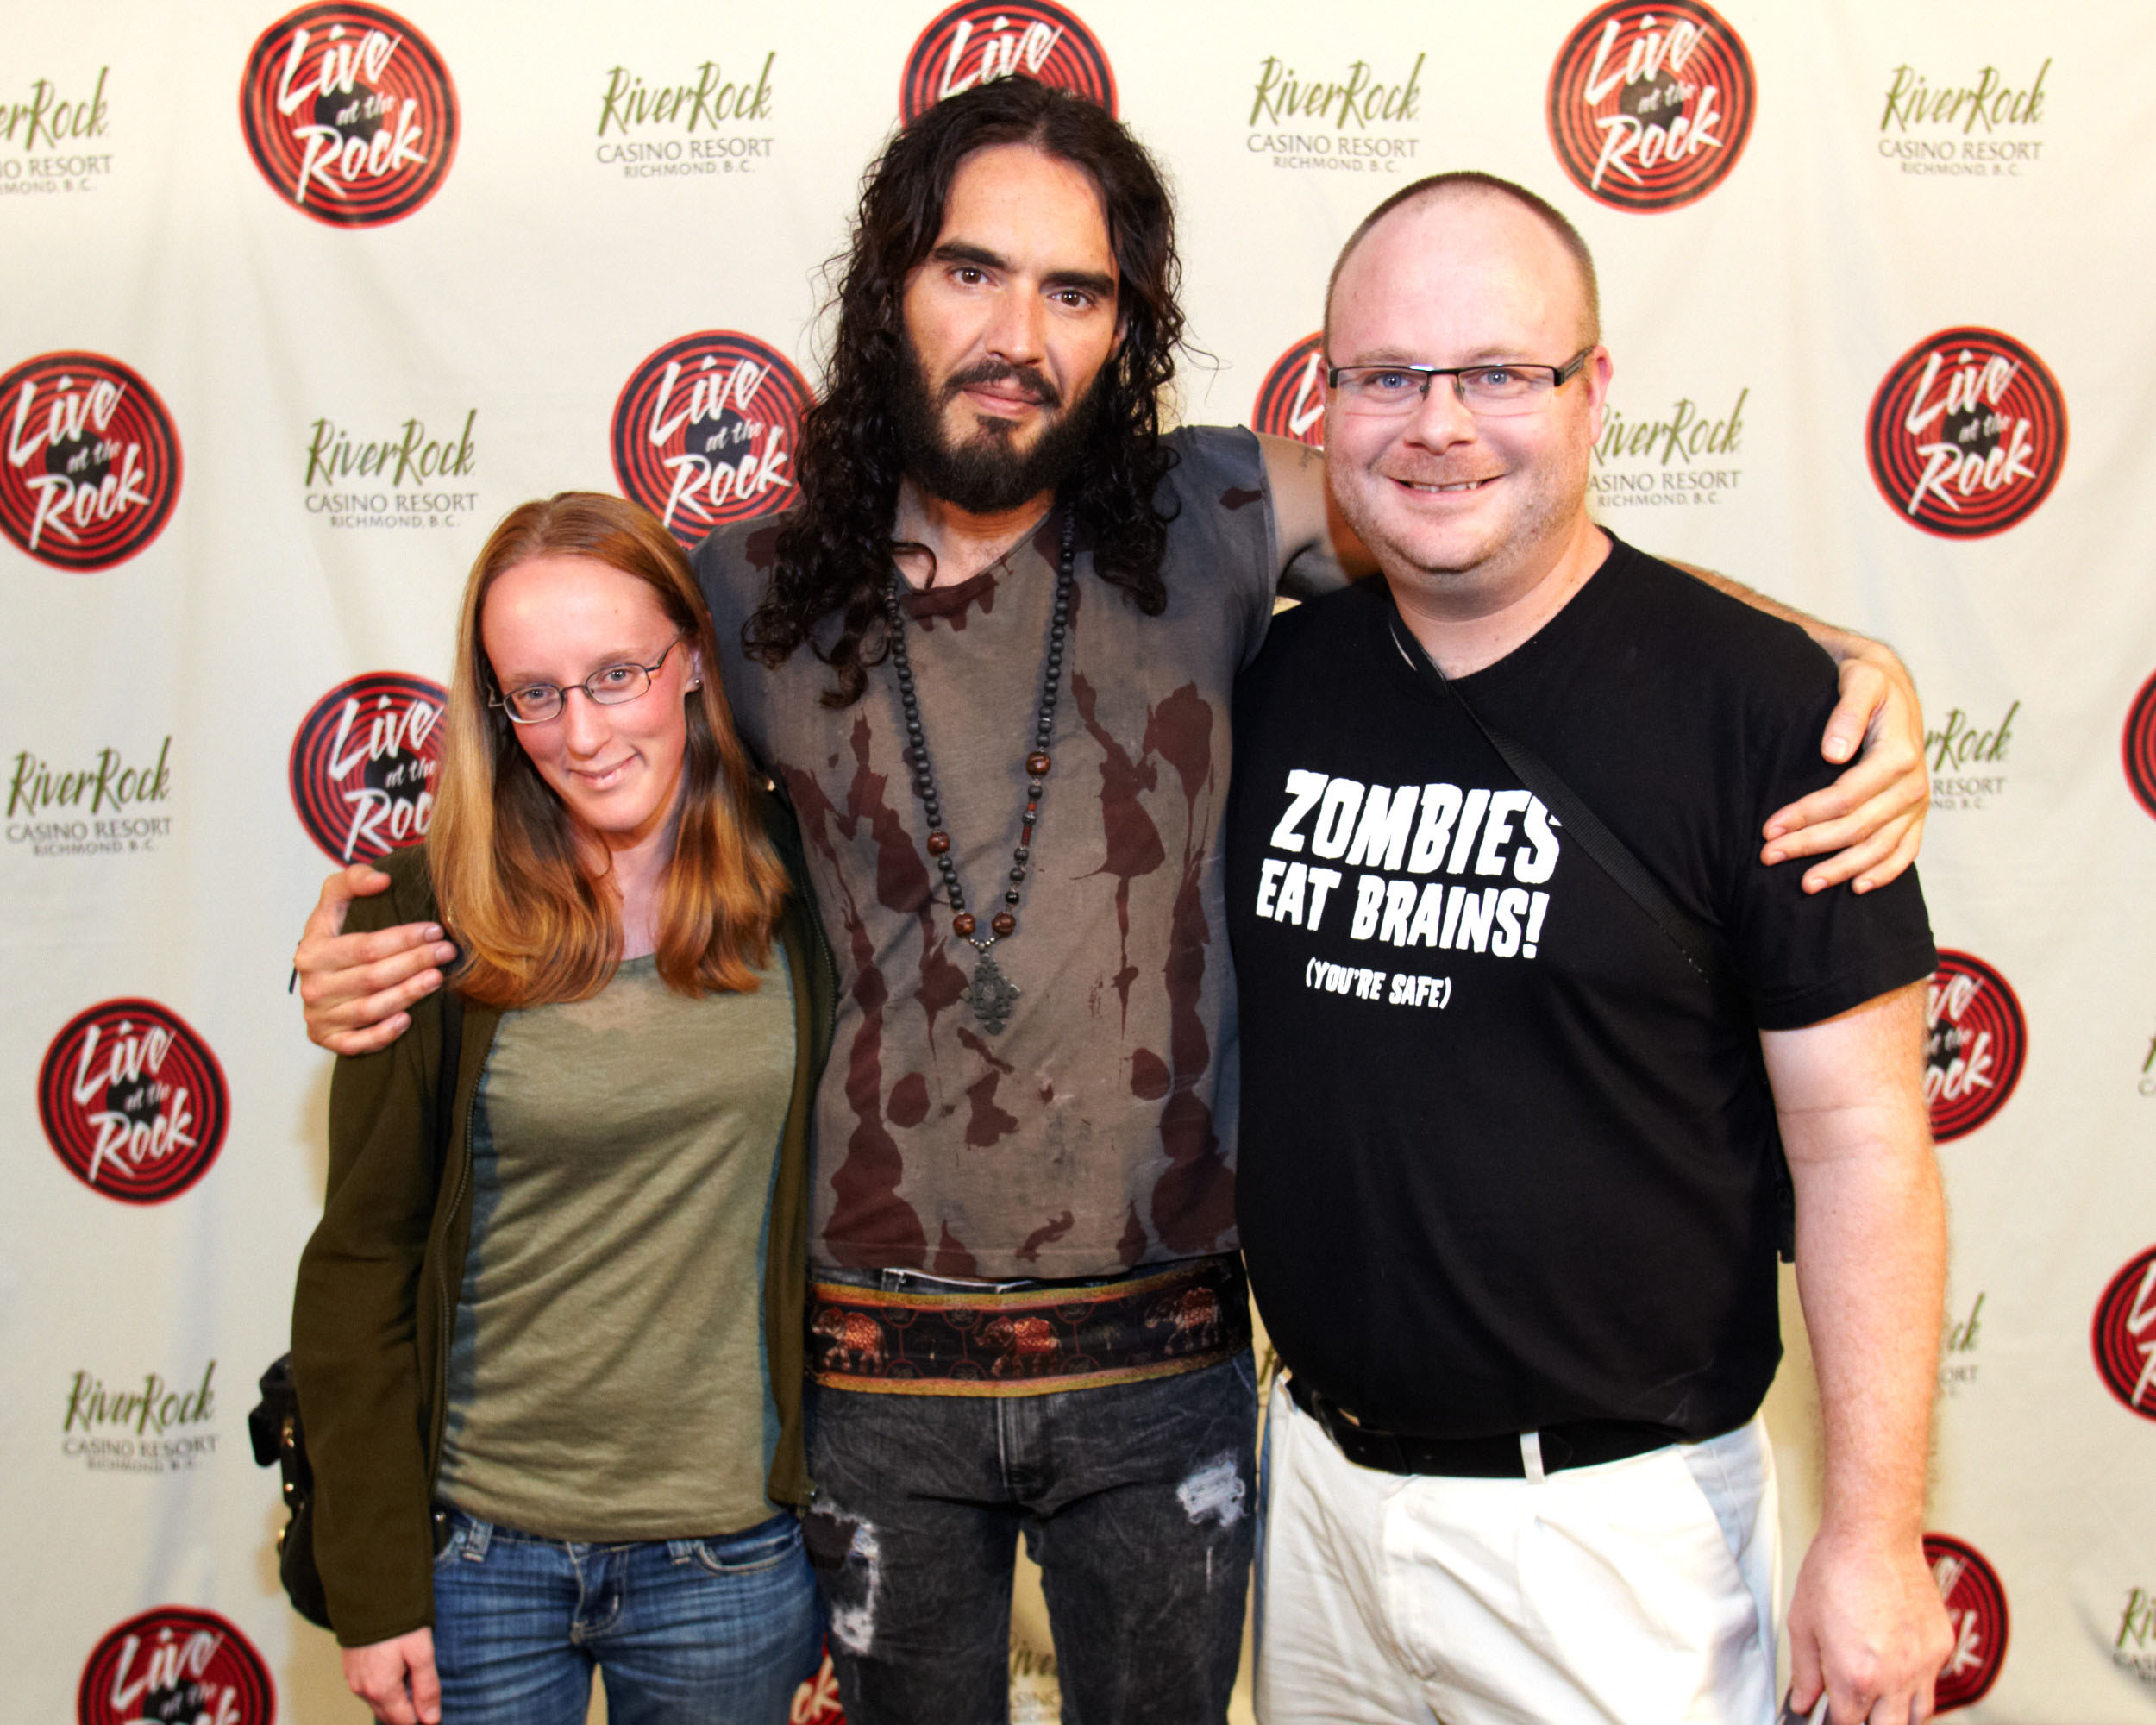 Meeting Russell Brand on September 29, 2012.    Left to right: Shannon Cawley, Russell Brand and Steven Lee.